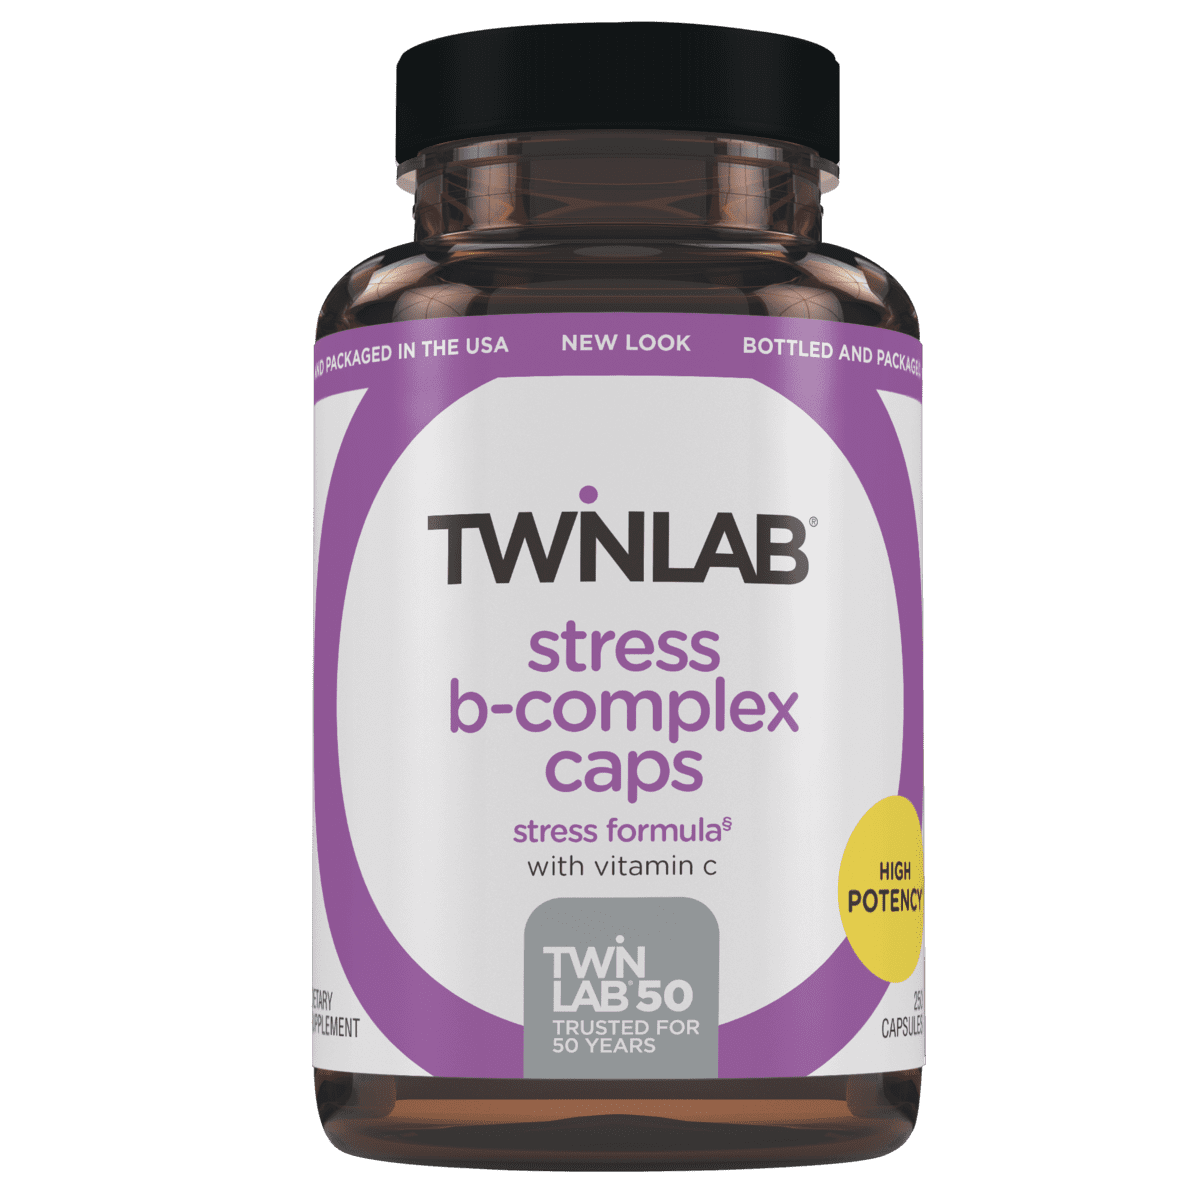 Just 2 capsules a day of Stress B-Complex 250 Count Caps helps counter negative effects of Stress.